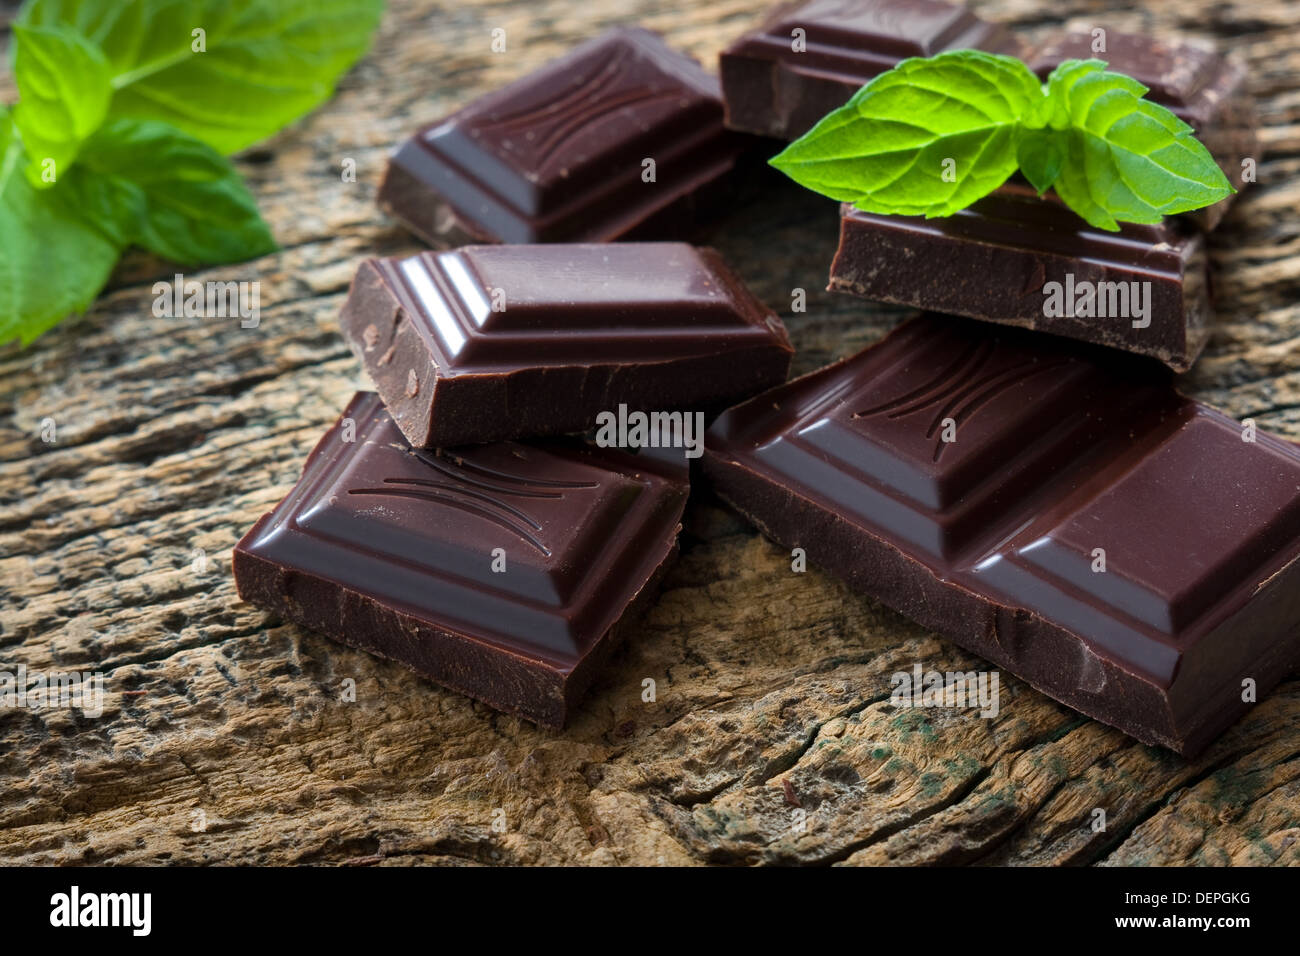 Dark chocolate pieces with a leaf of mint on wooden background - Stock Image